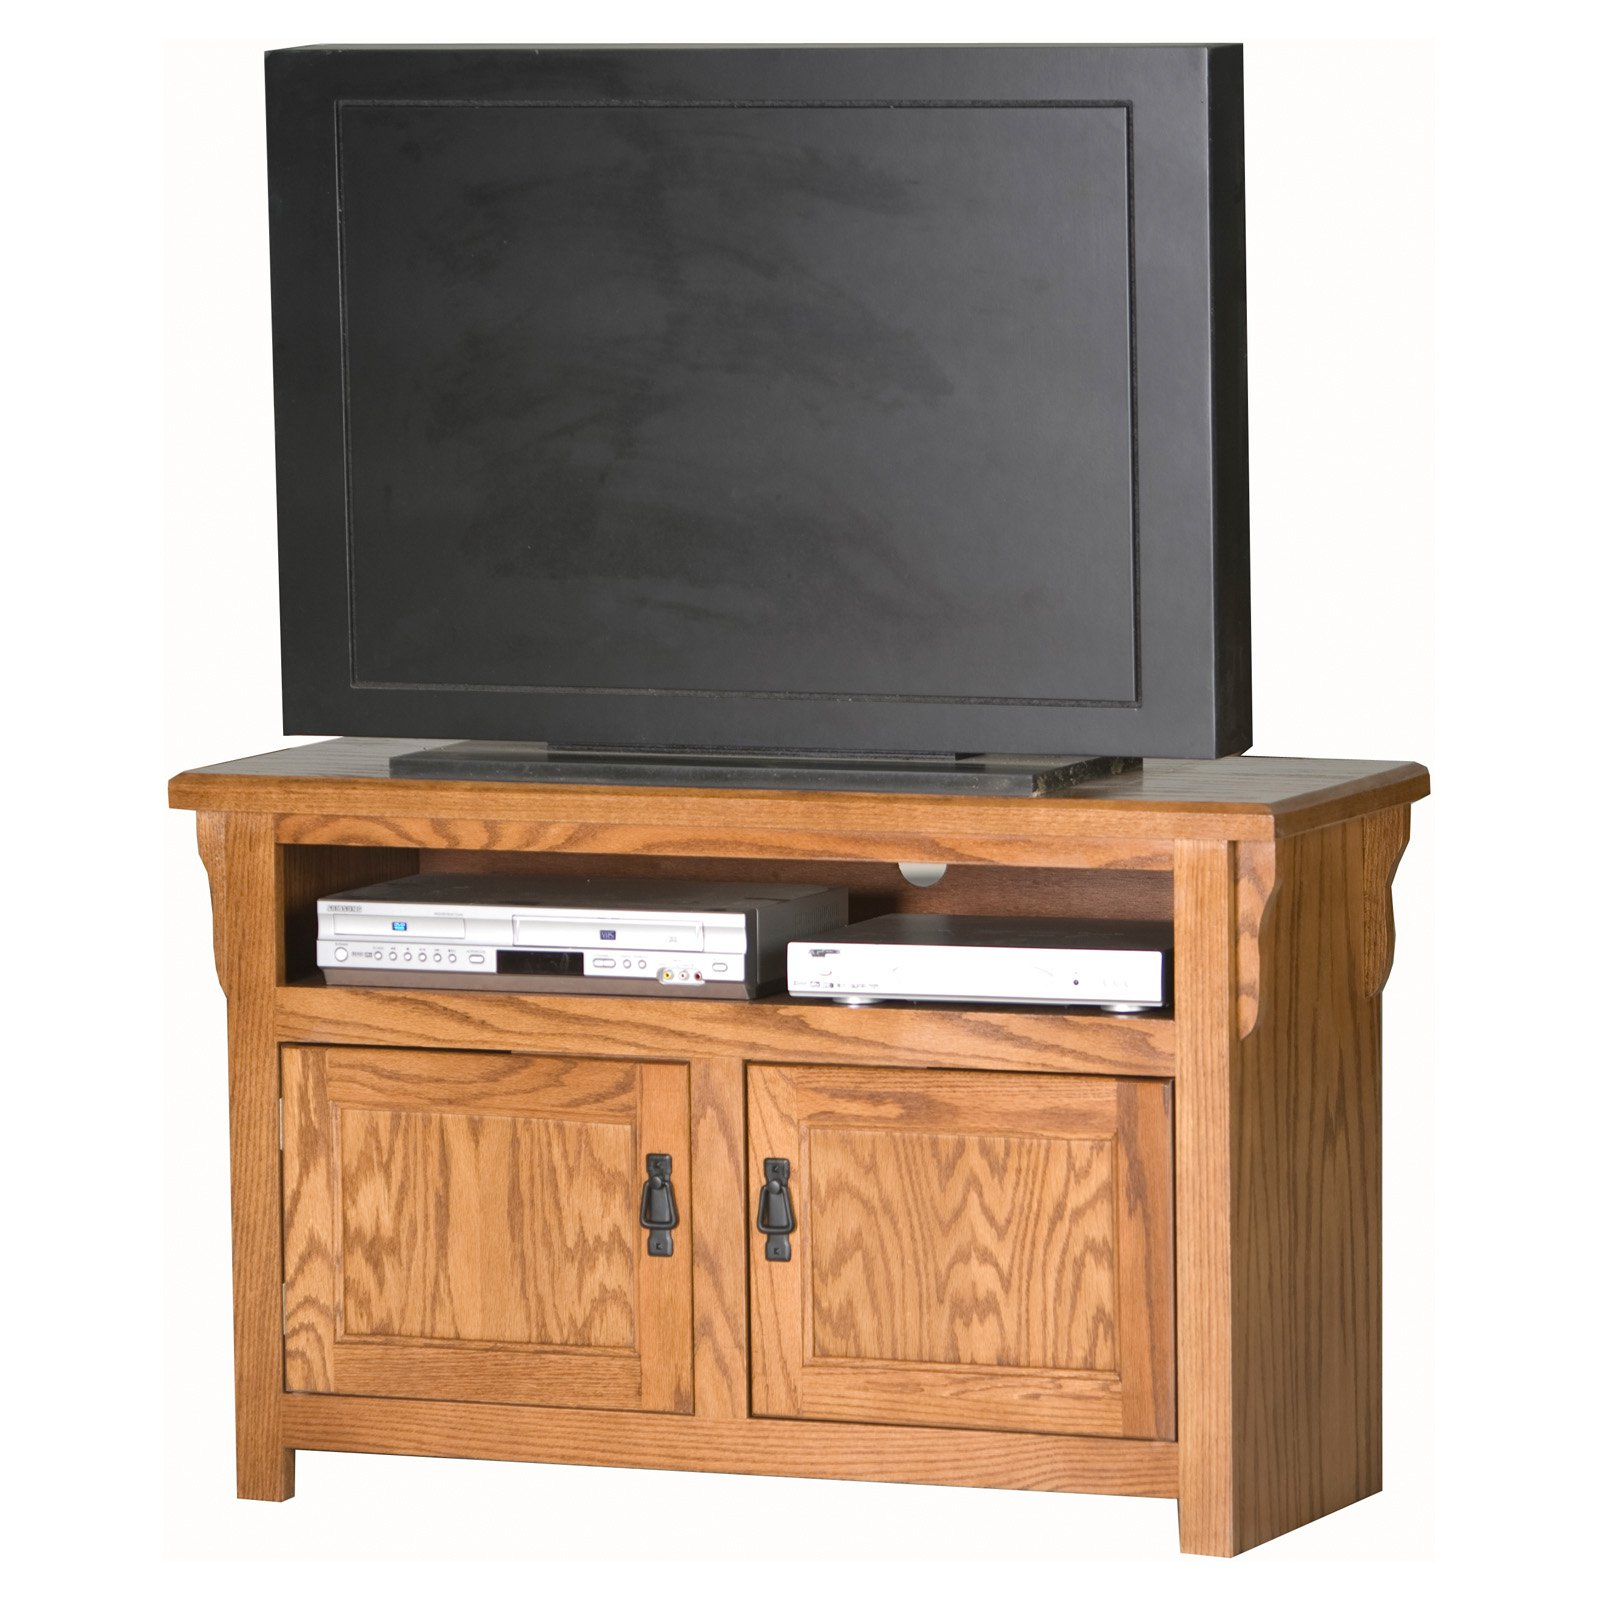 Eagle Furniture Mission 43 in. TV Stand